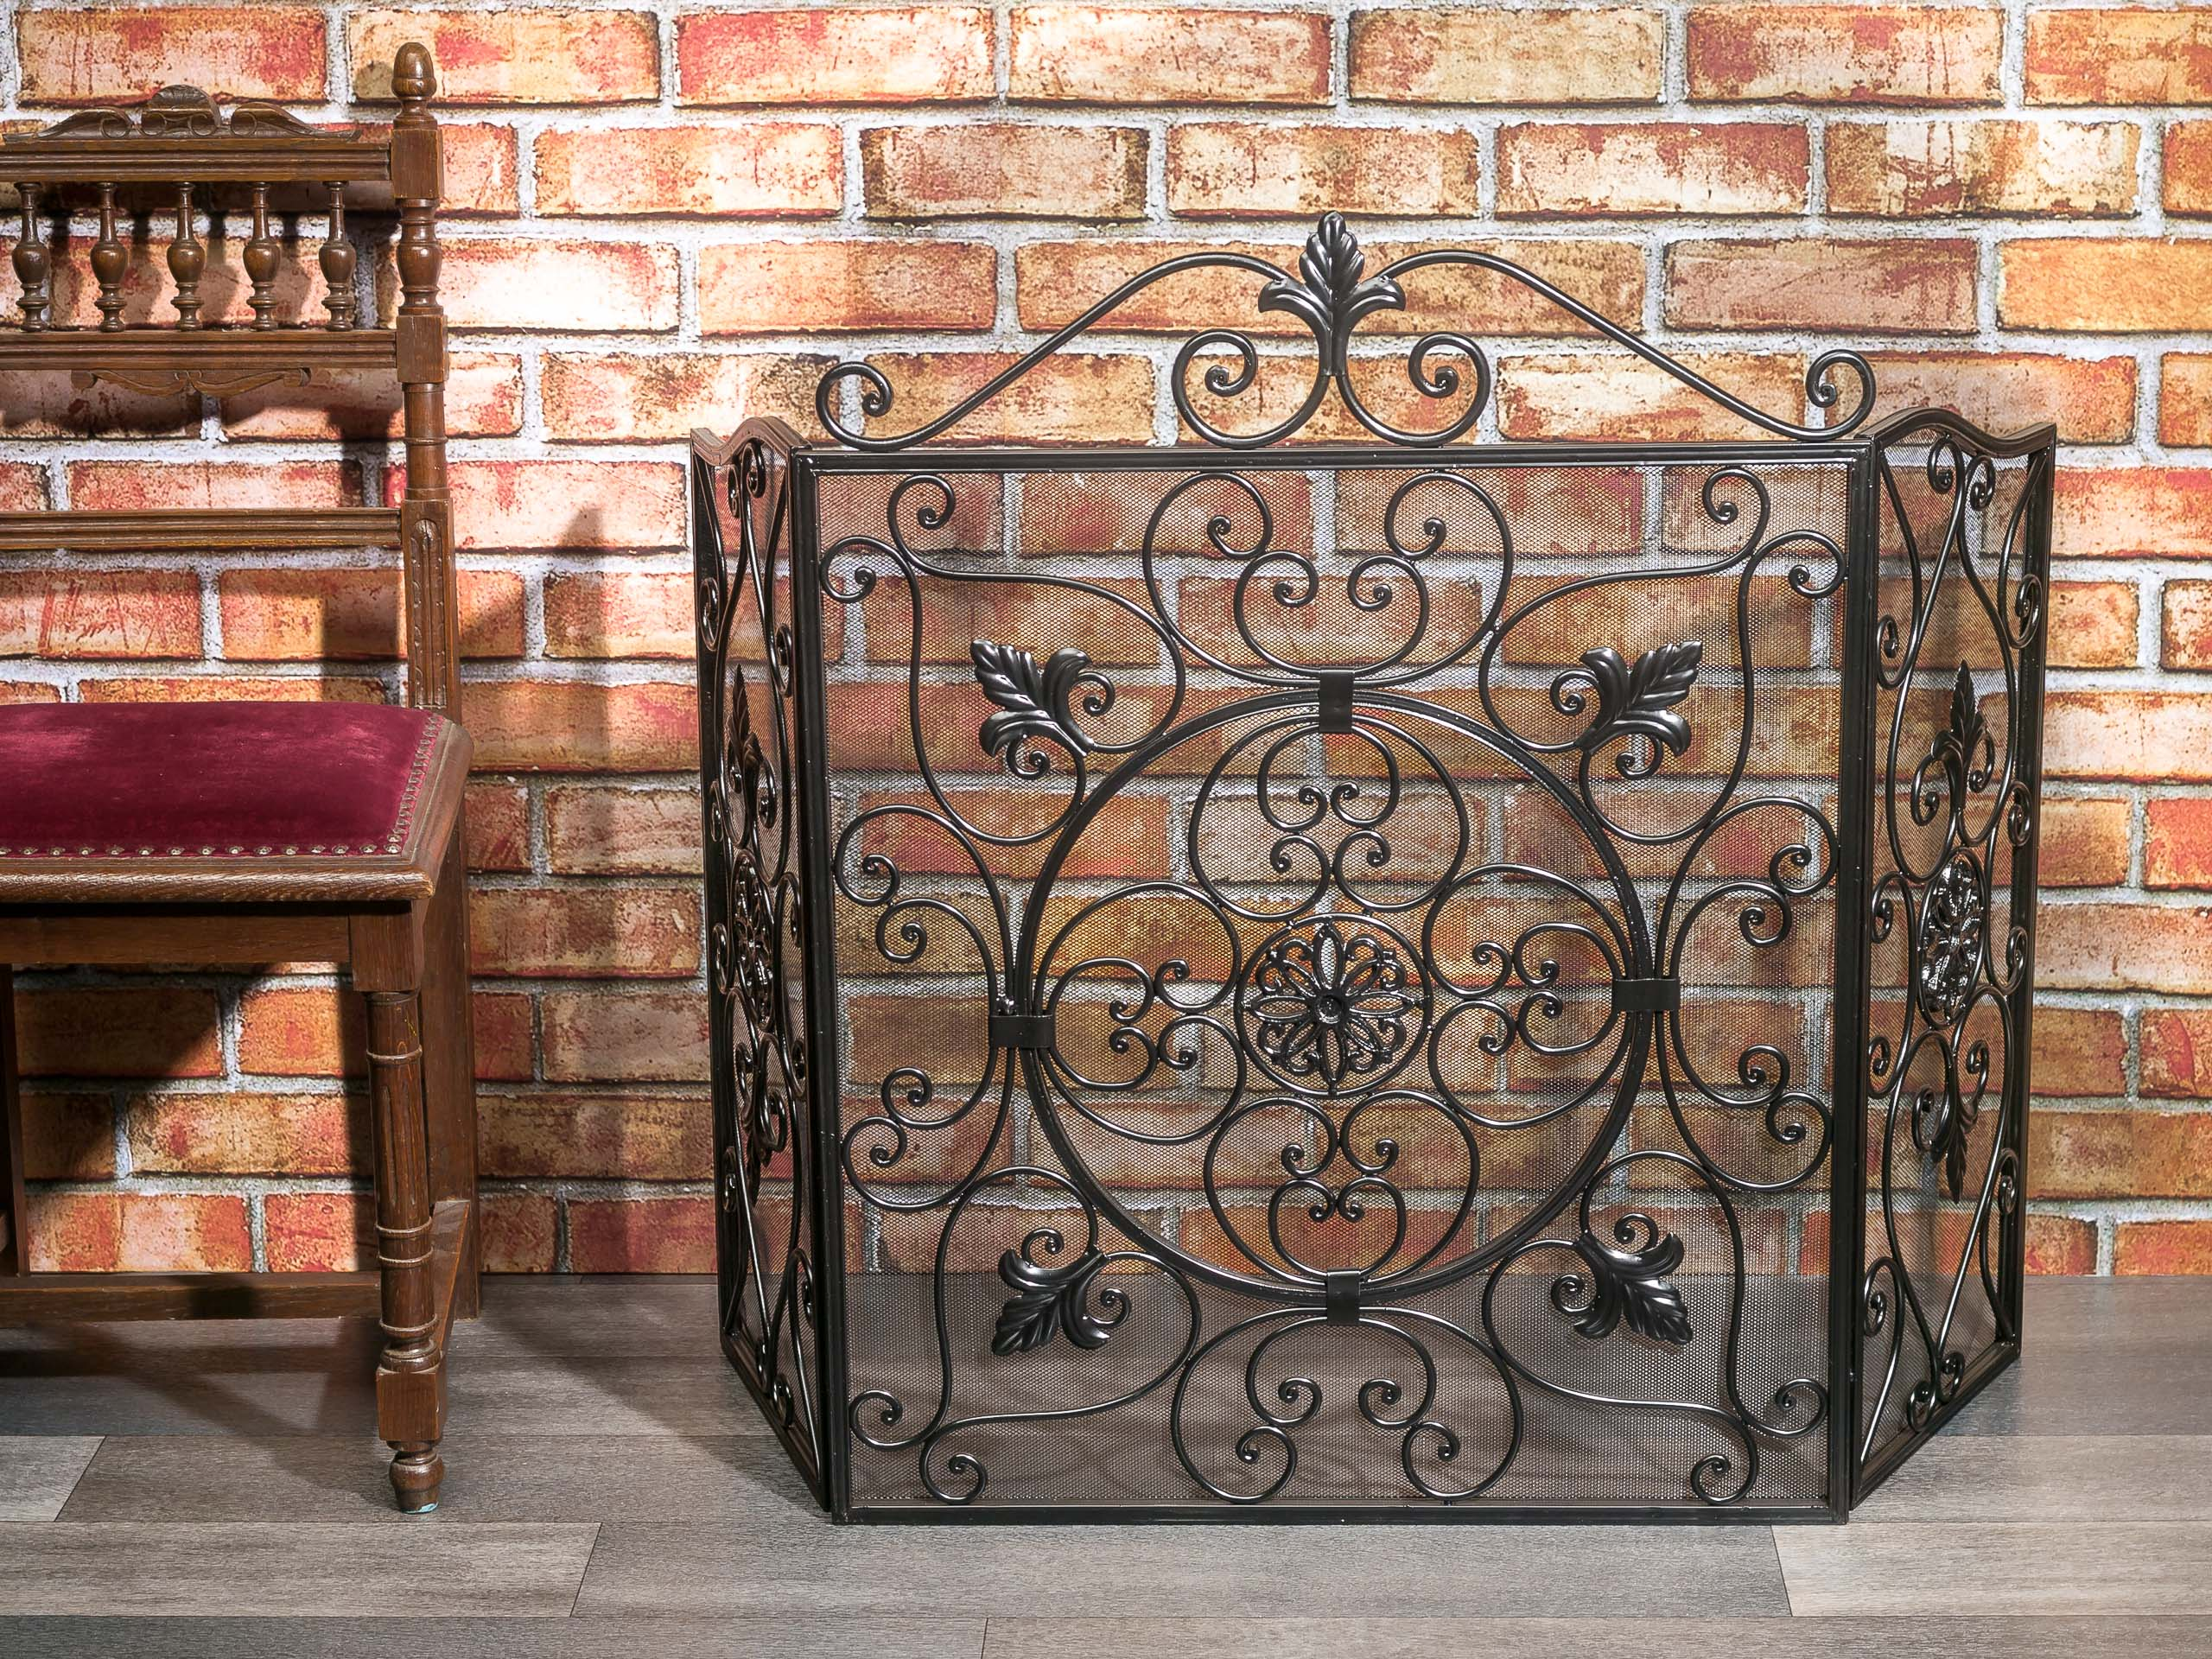 Antik Metall Fireplace Spark Guard Fleur De Lis Iron Fire Place Screen Antique Style